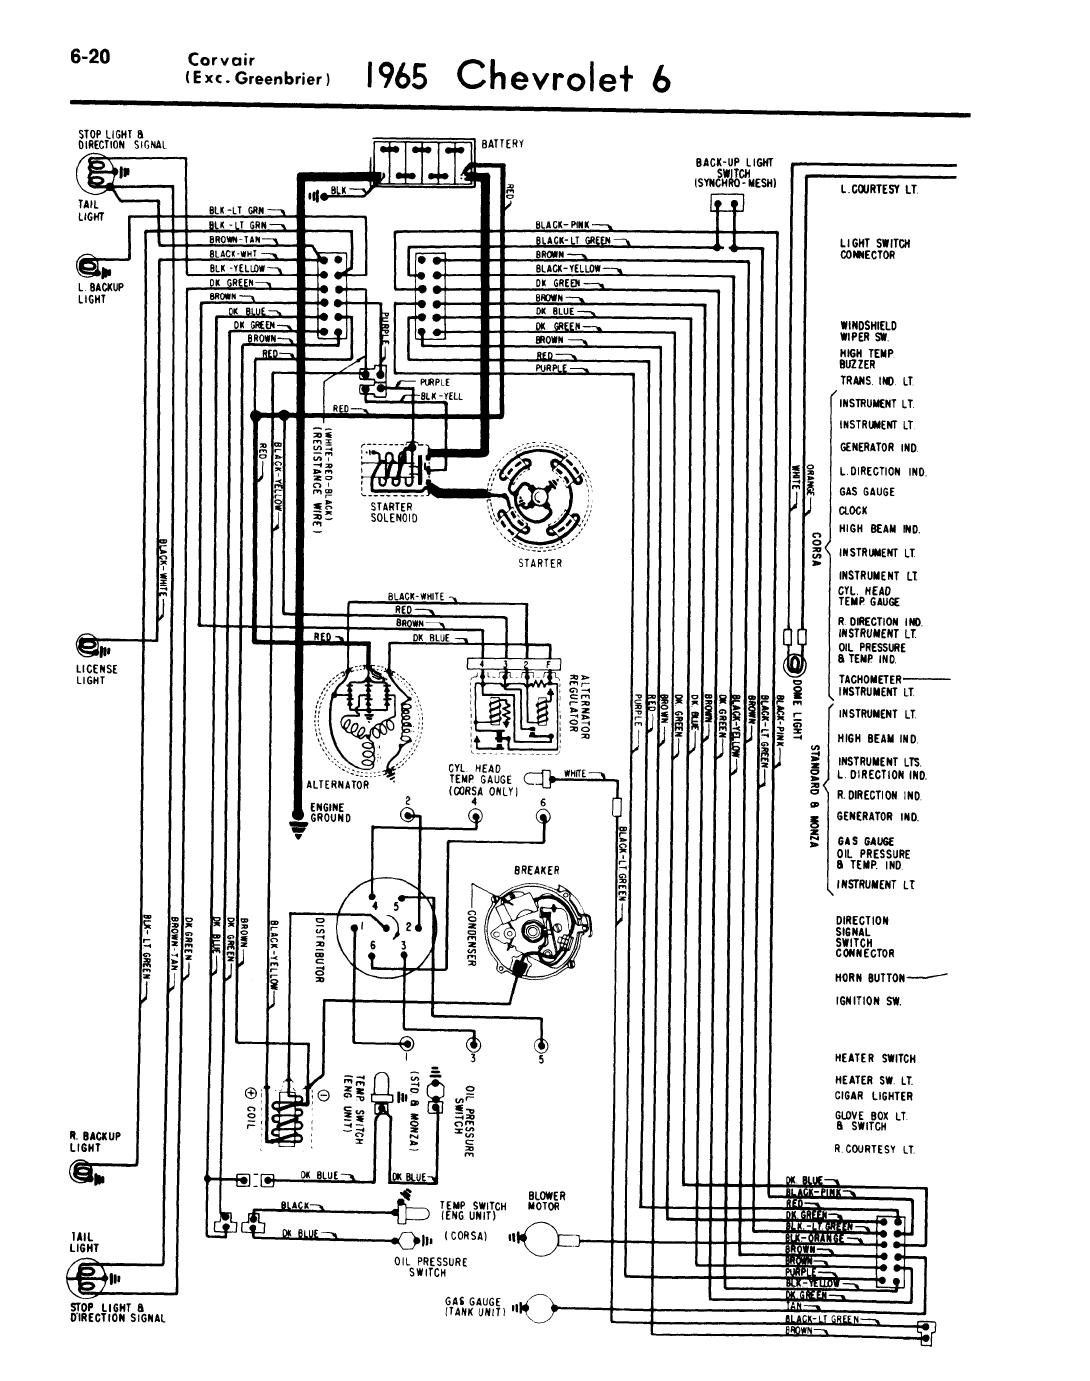 1965 Corvair Wiring Diagram Fuse Box Printable Engine I Need Diagrams For Speed Wipers And Headlight Switch Sam Graphic